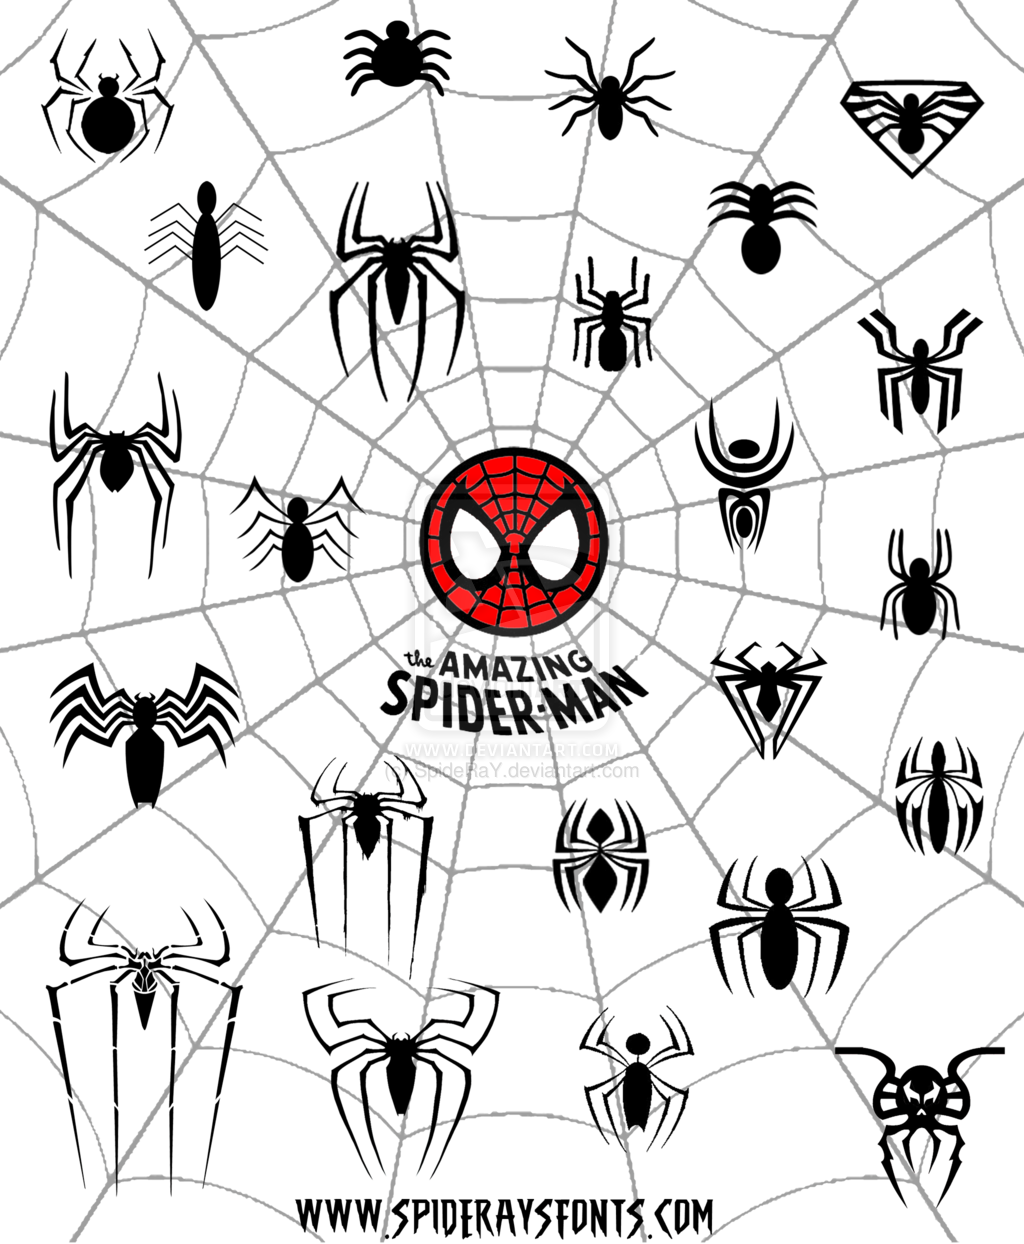 The Amazing Spider Man Logo Web By SpideRaYdeviantart On DeviantART